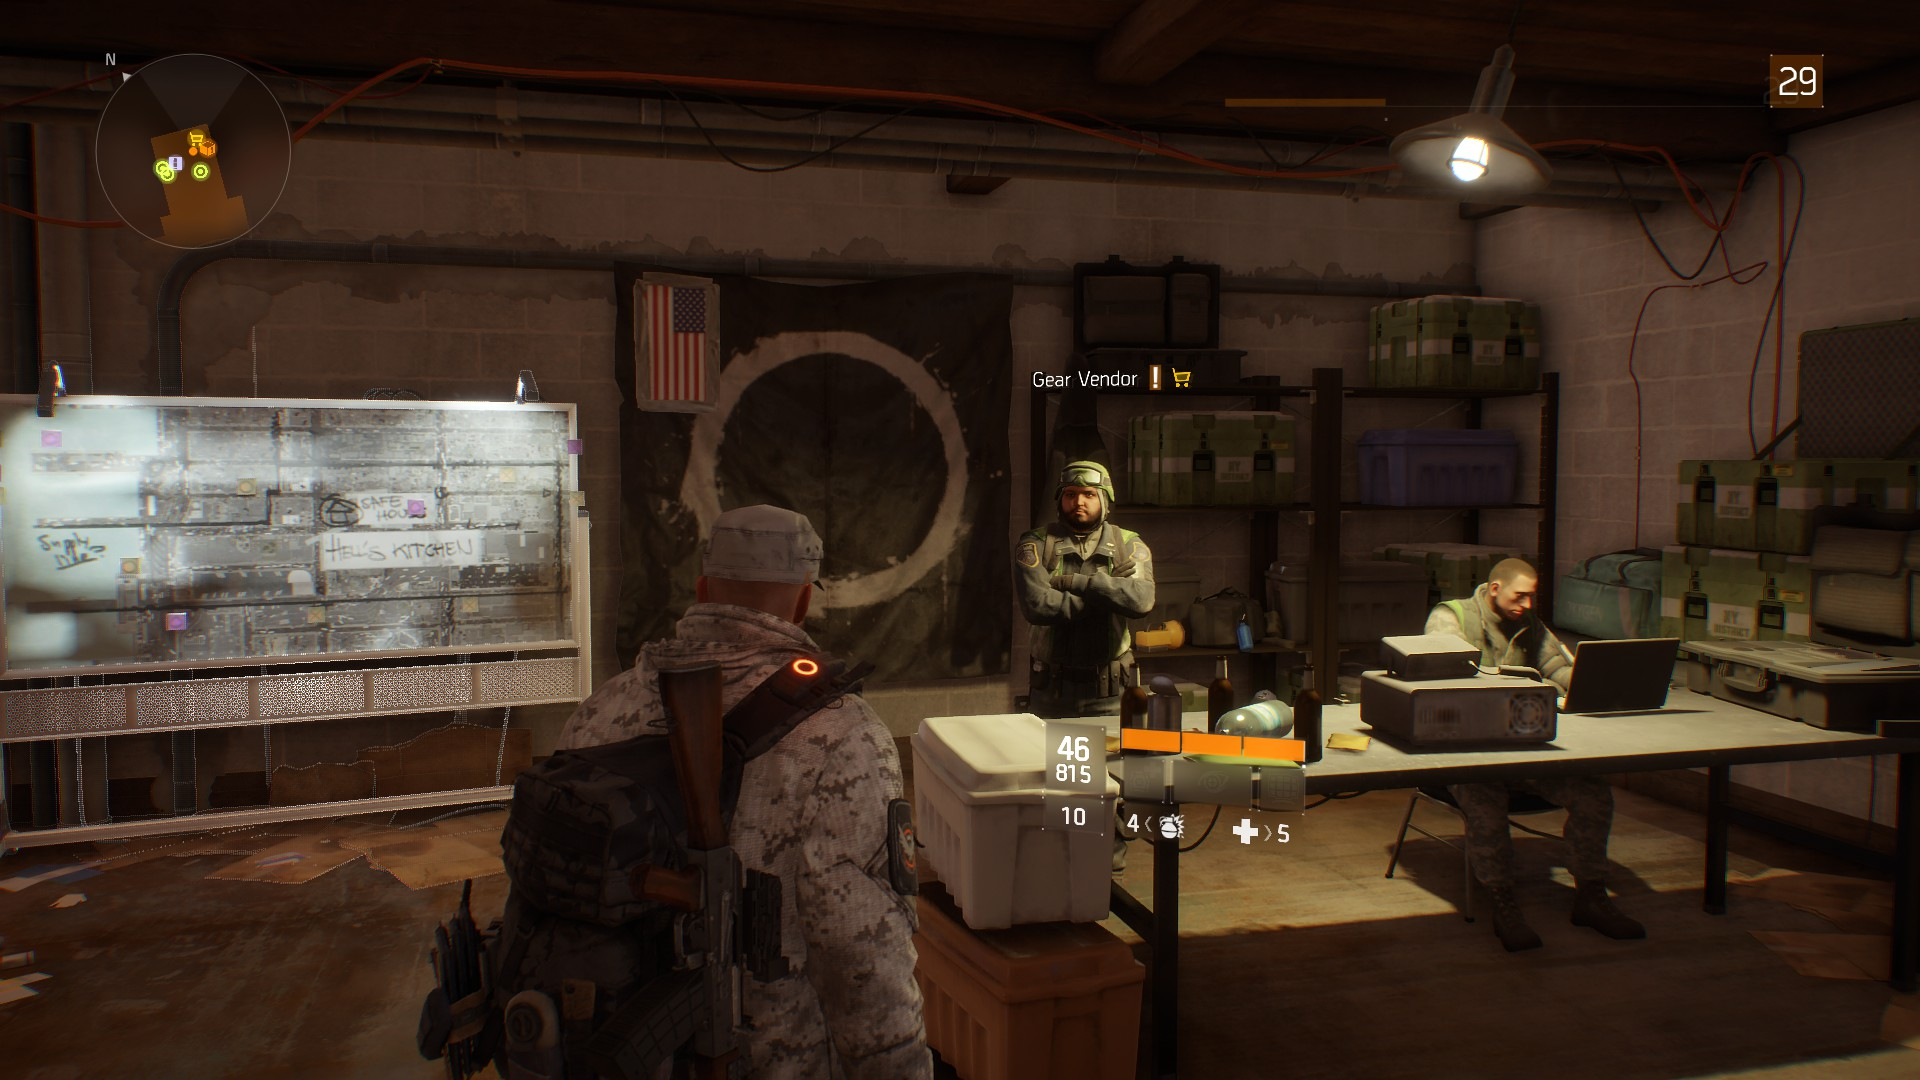 The Division: All Weapon and Gear Vendors, Safe Houses | USgamer